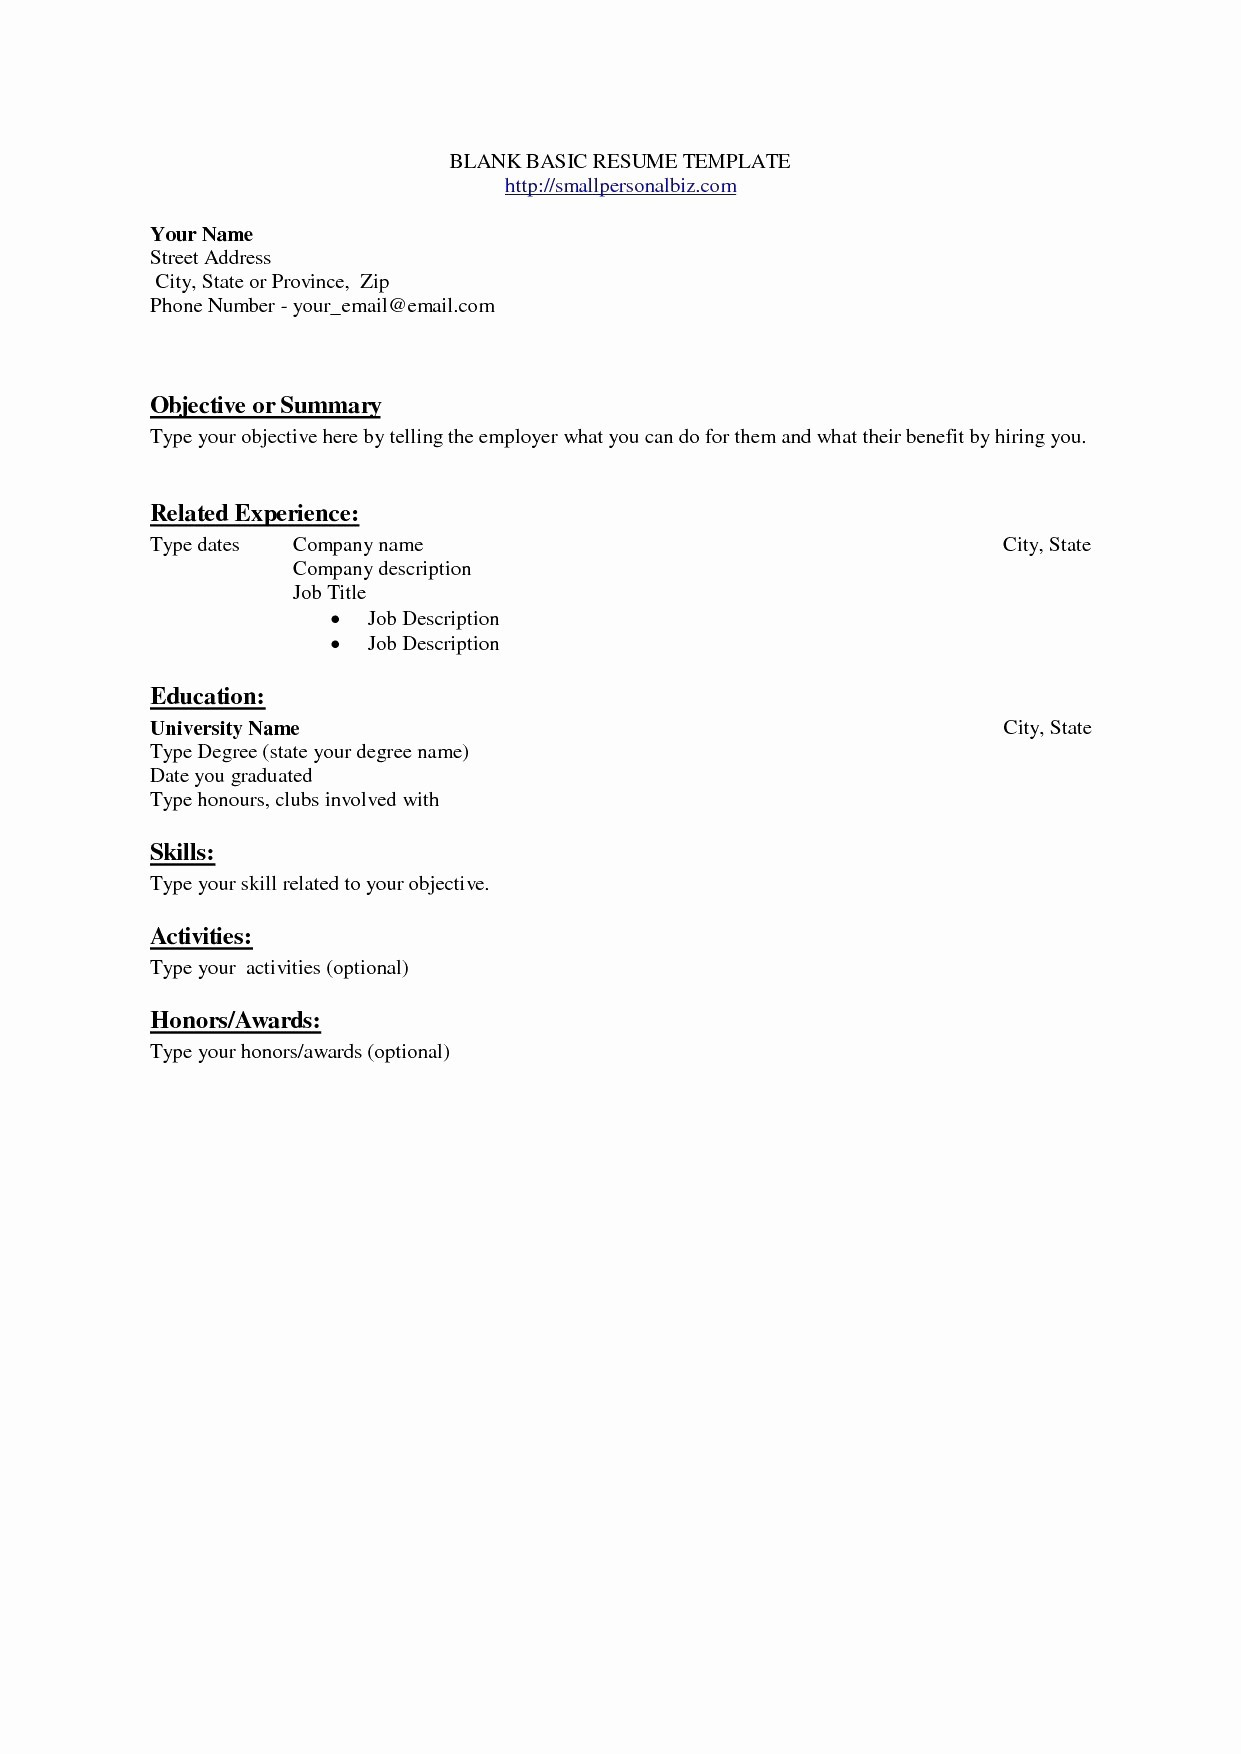 Experienced Nurse Resume Template - Resume Linkedin Awesome Unique Experienced Rn Resume Fresh Nurse